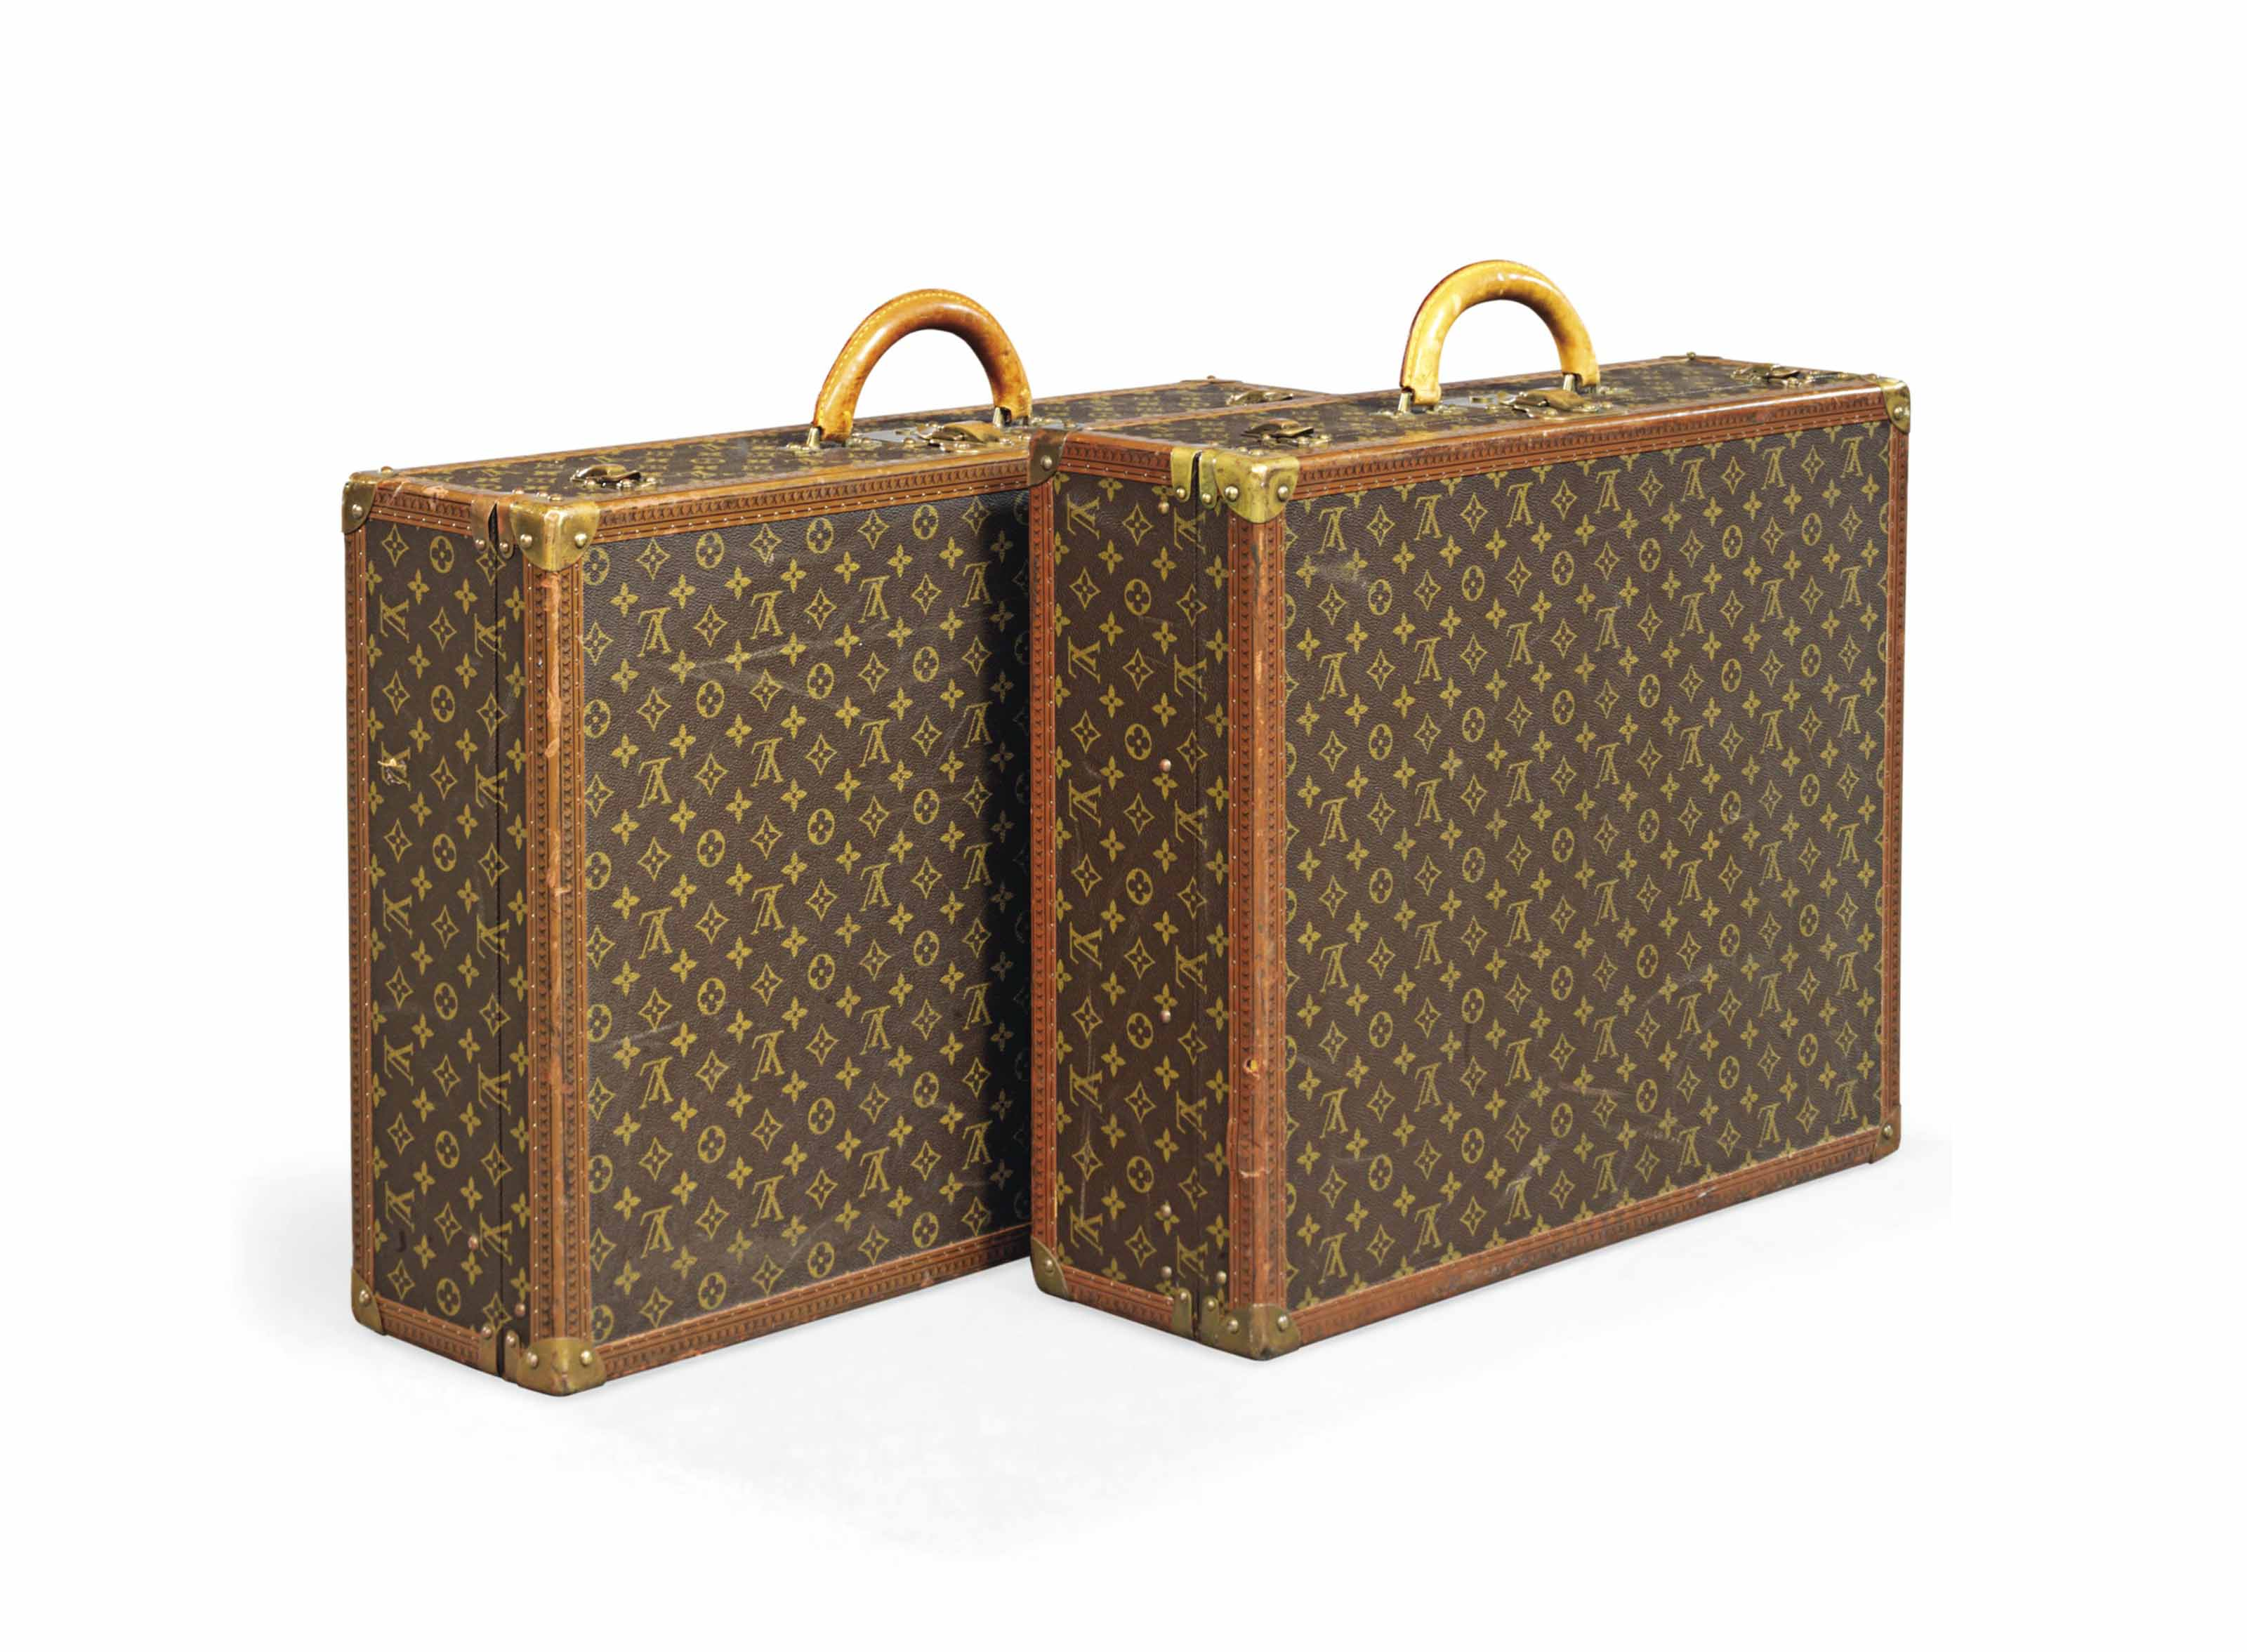 TWO ALZER SUITCASES IN MONOGRA